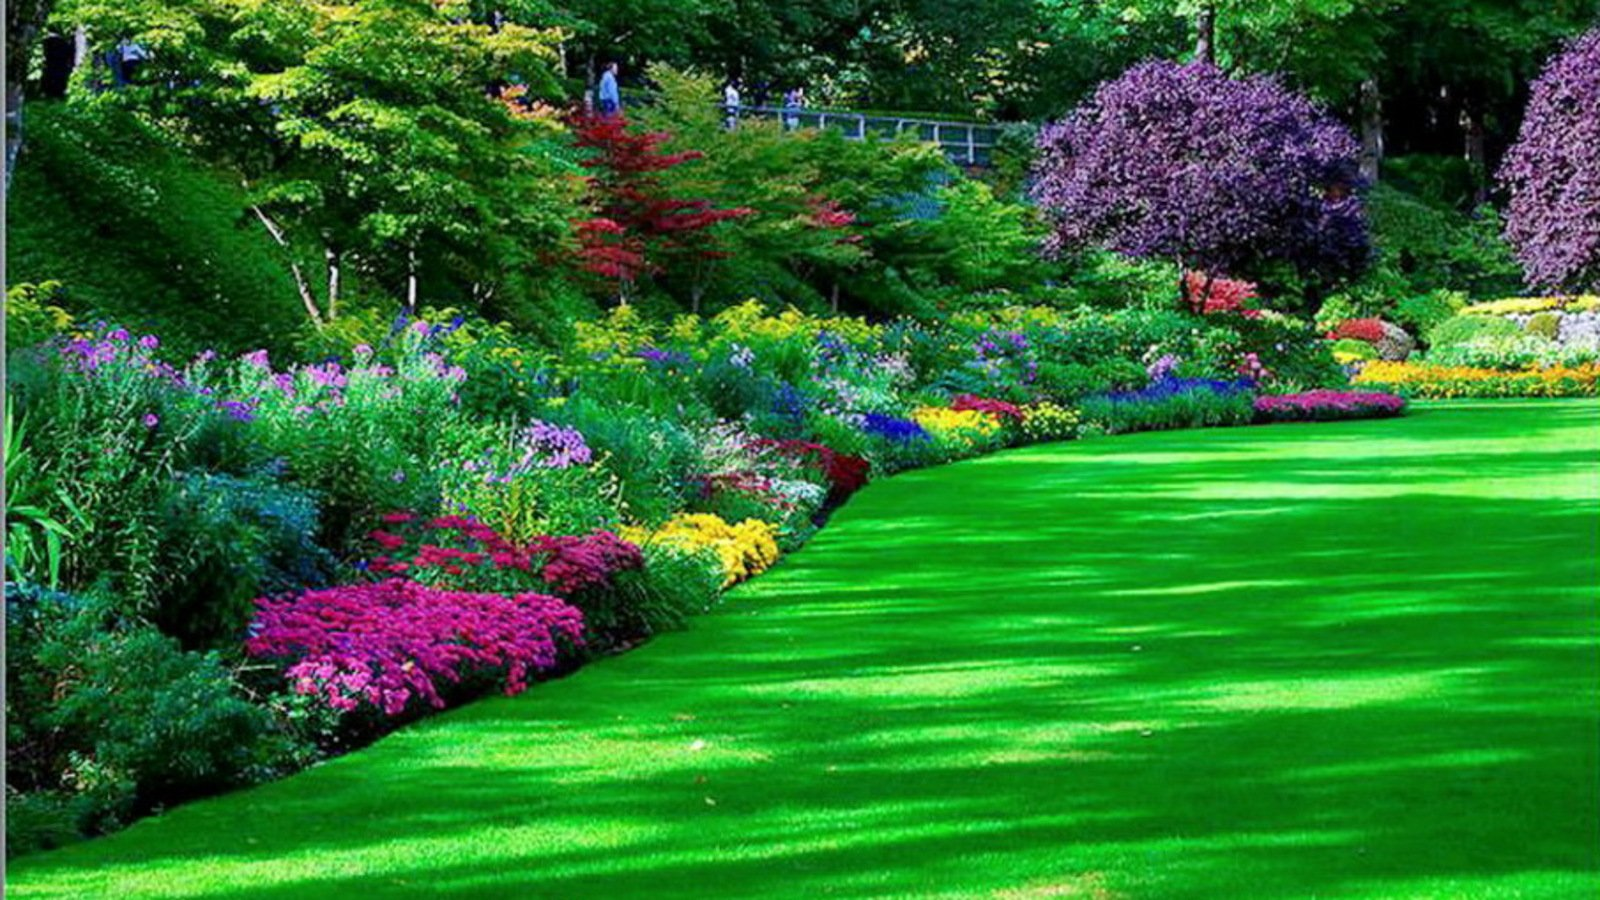 270 garden hd wallpapers background images wallpaper abyss